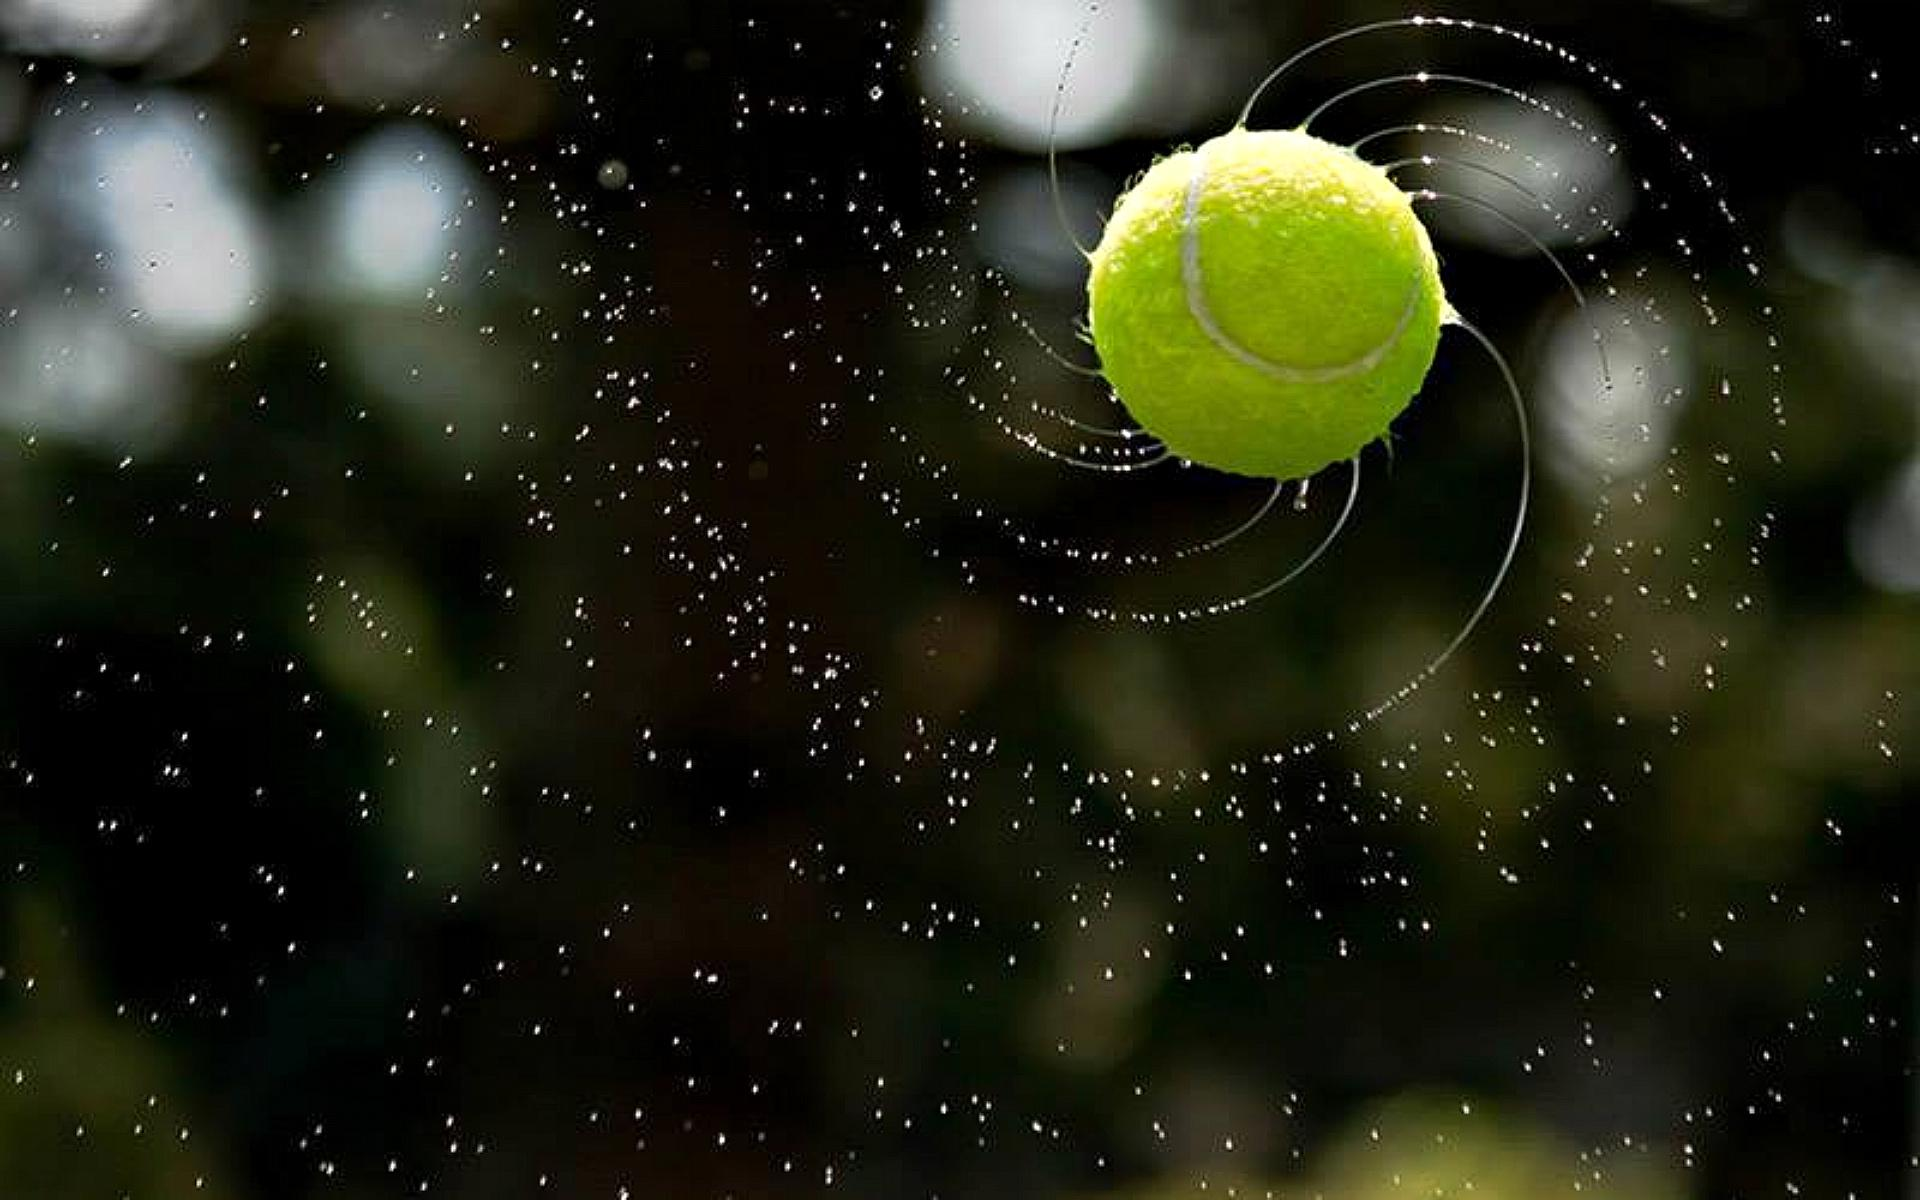 Tennis Wallpaper Hd Posted By Christopher Mercado